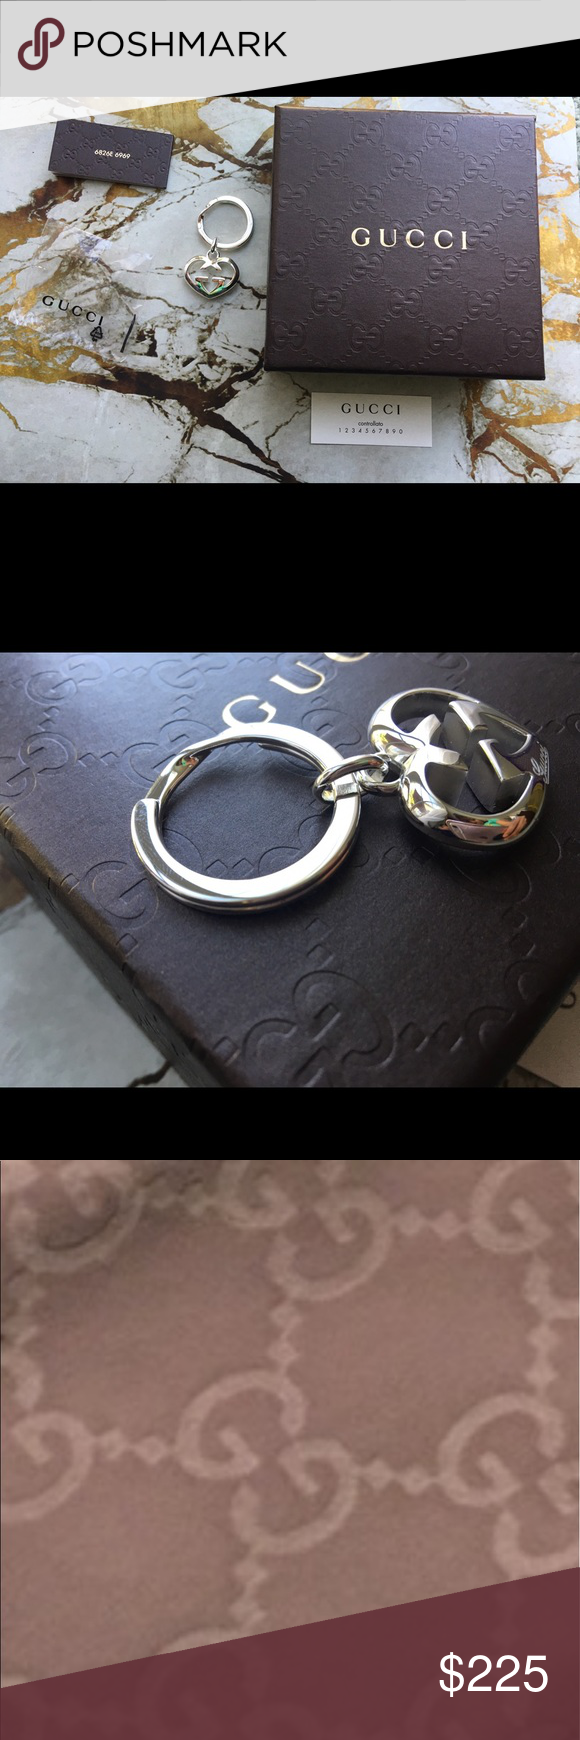 f52f2d61959be GUCCI – Sterling Silver Love Britt Key Ring. 100% Authentic